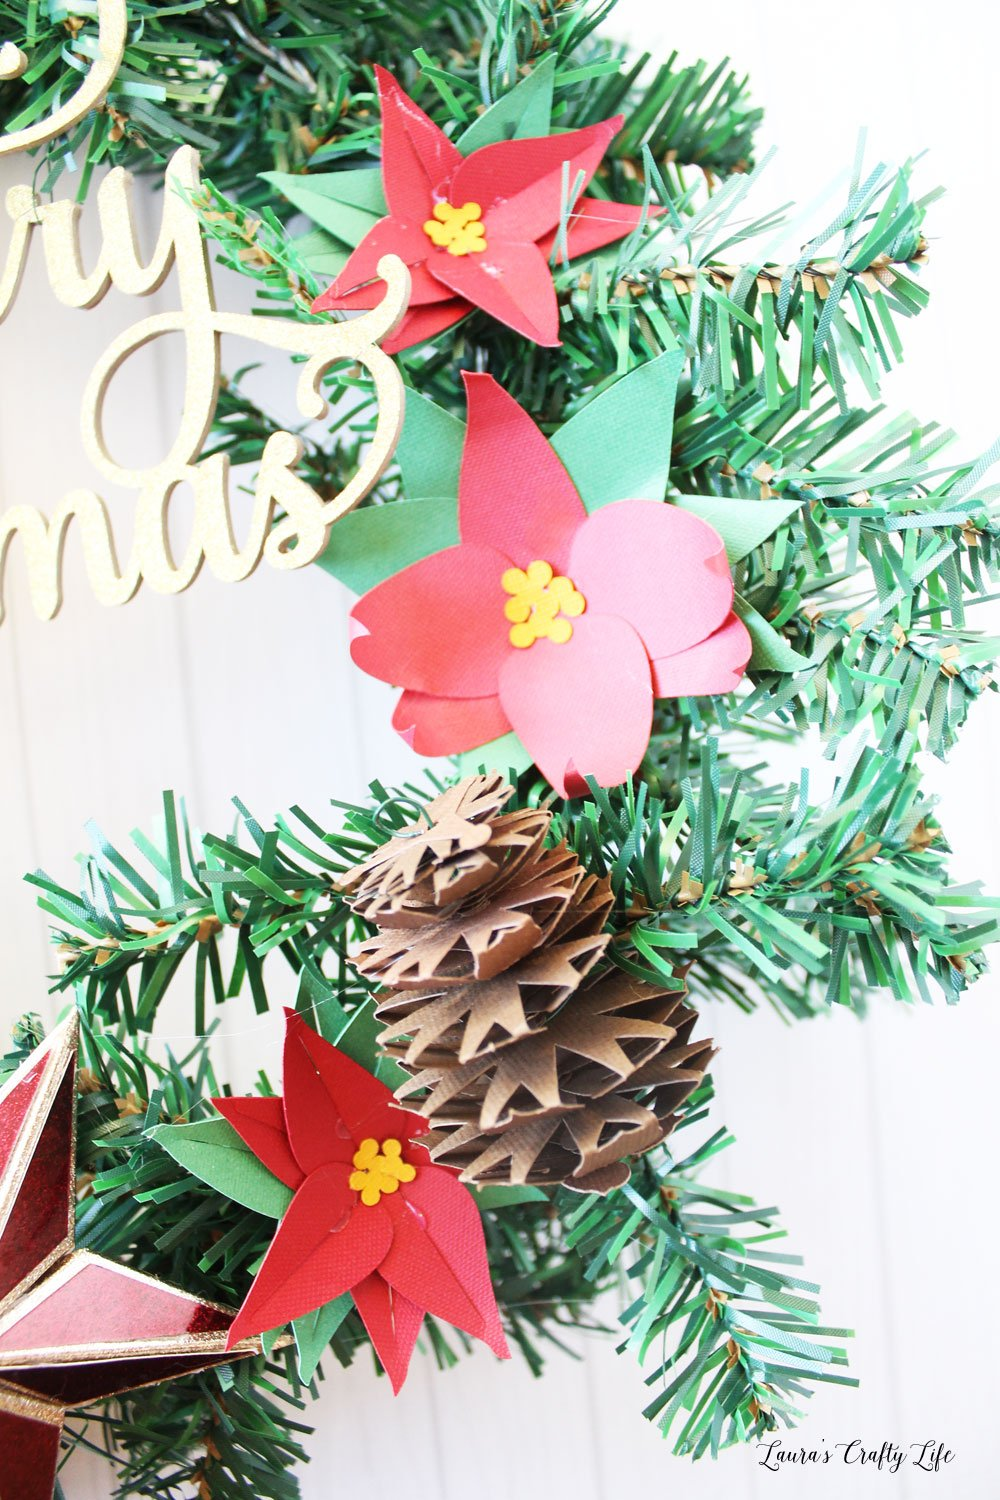 Paper poinsettias made with Cricut Maker